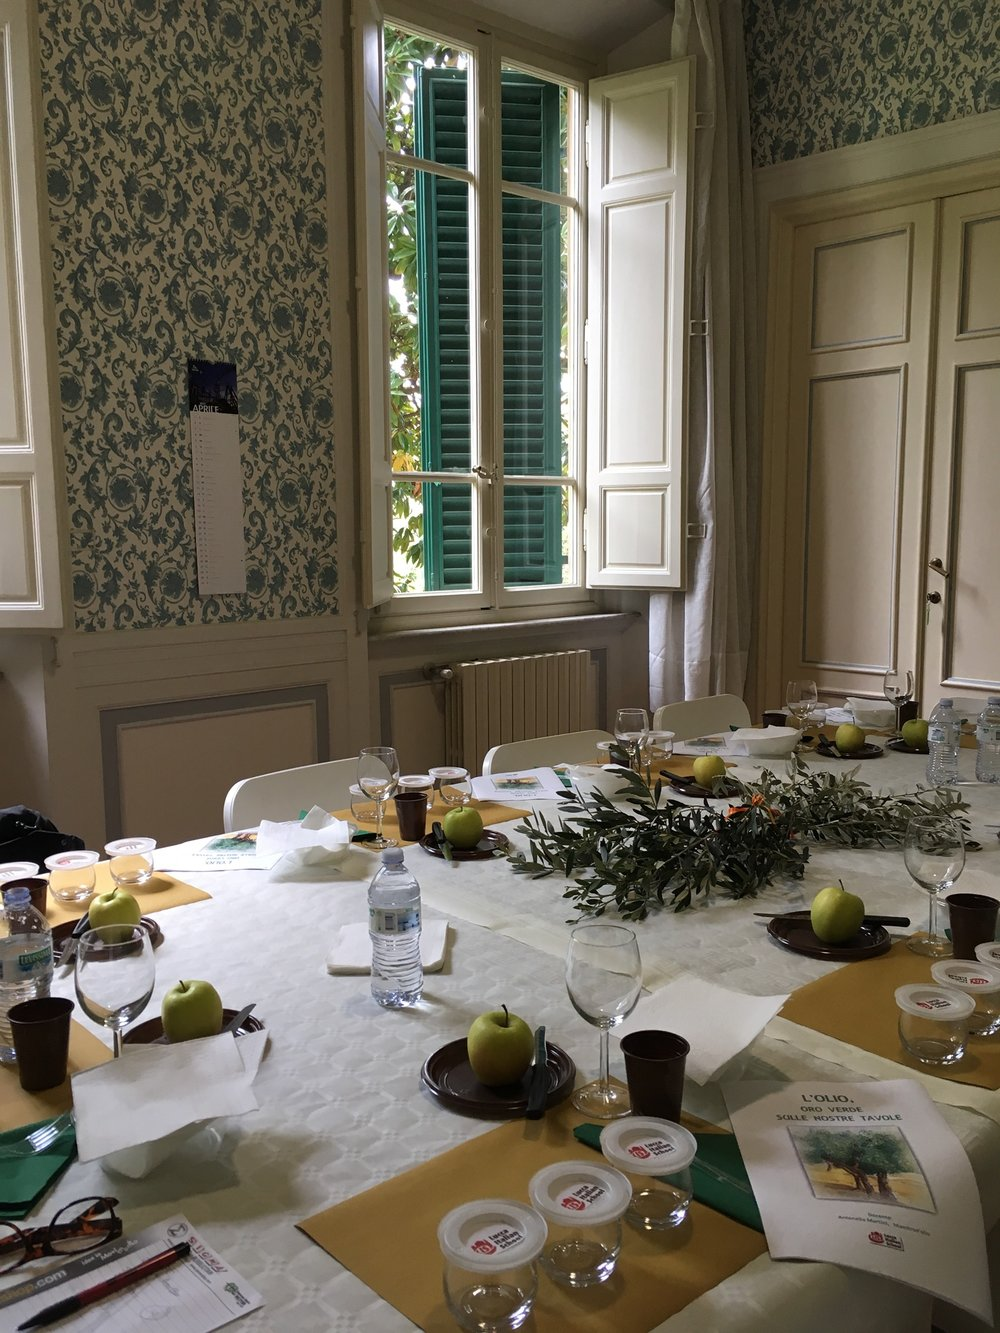 The table is set for olive oil tasting.